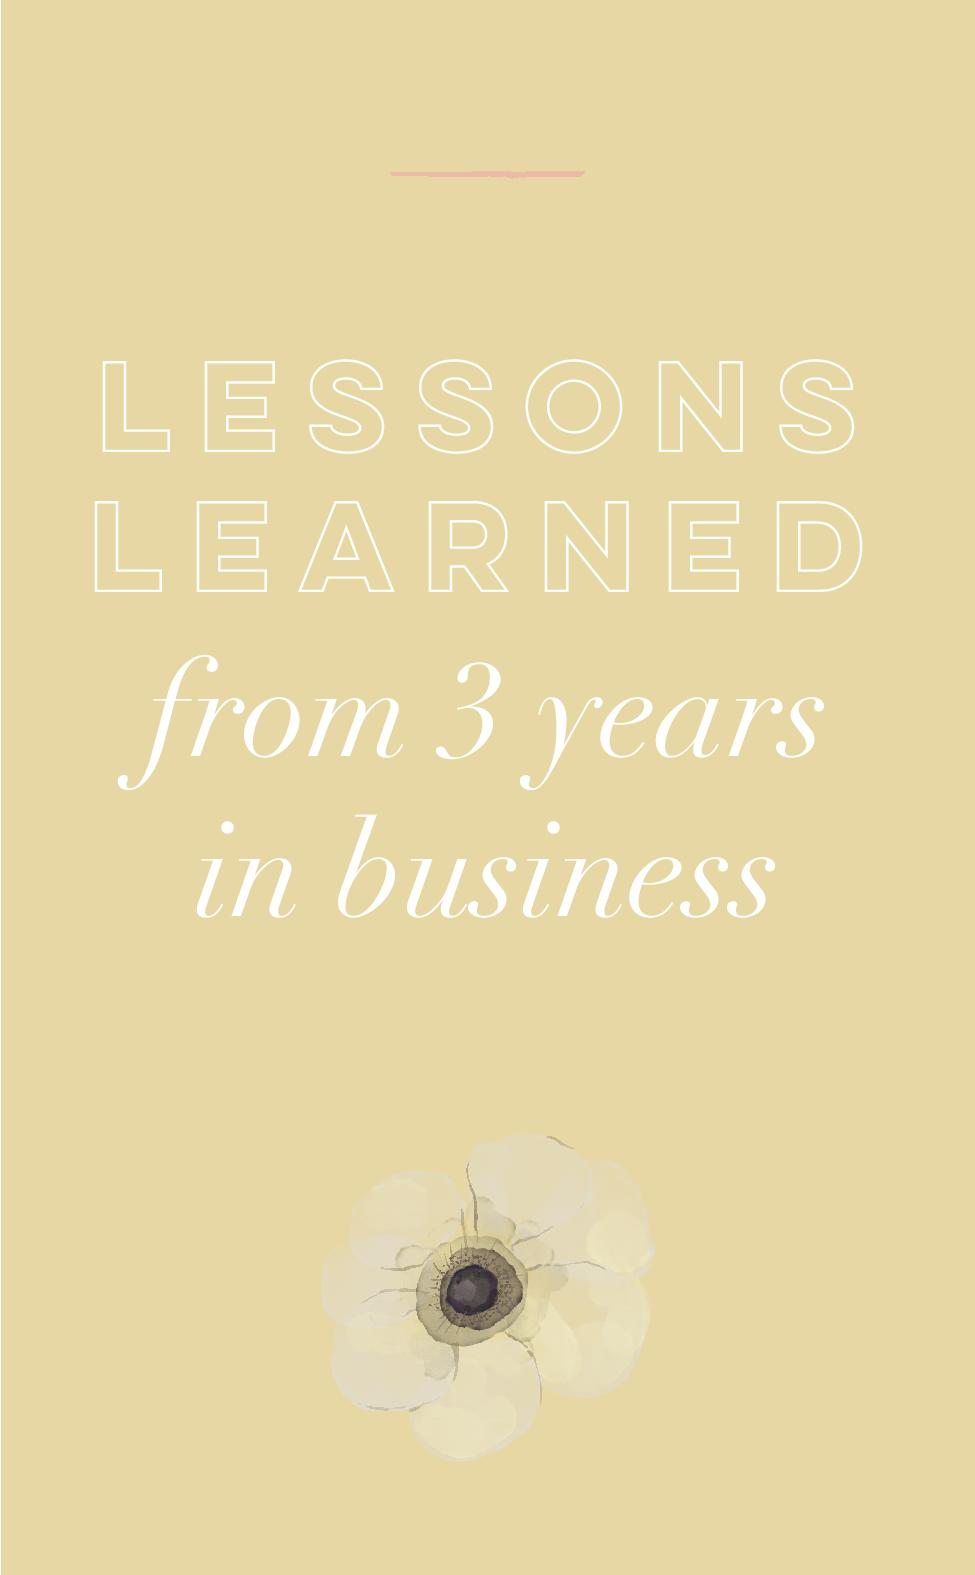 Lessons learned from 3 years in business.jpg